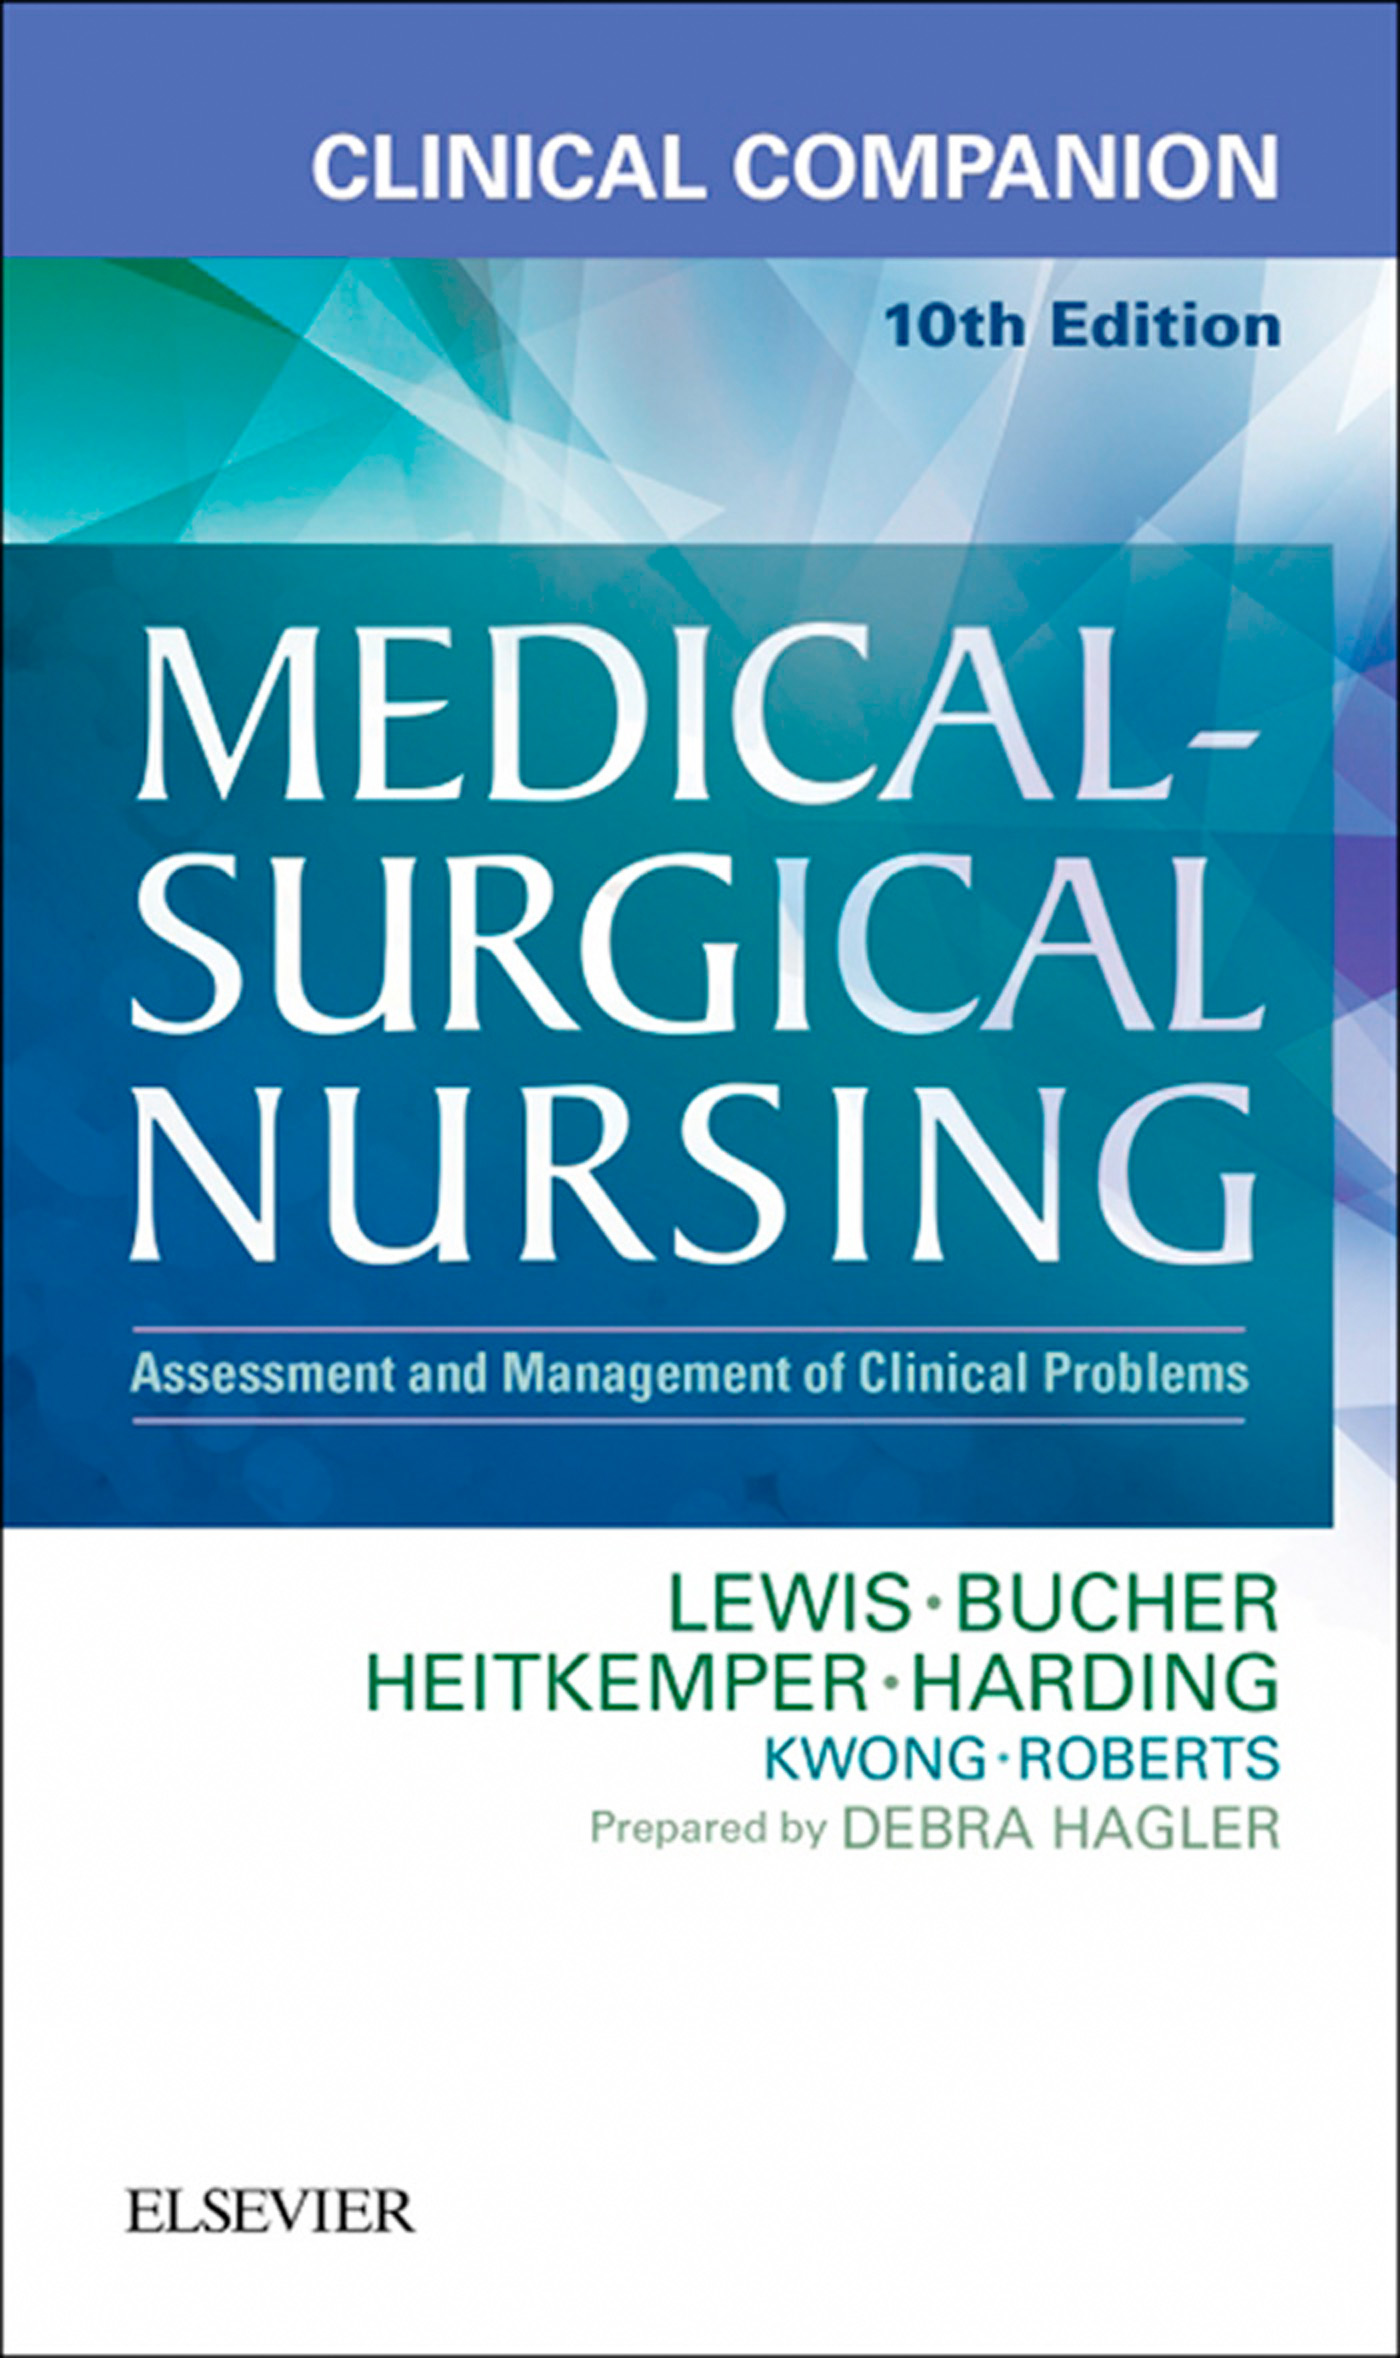 a clinical assessment and management of